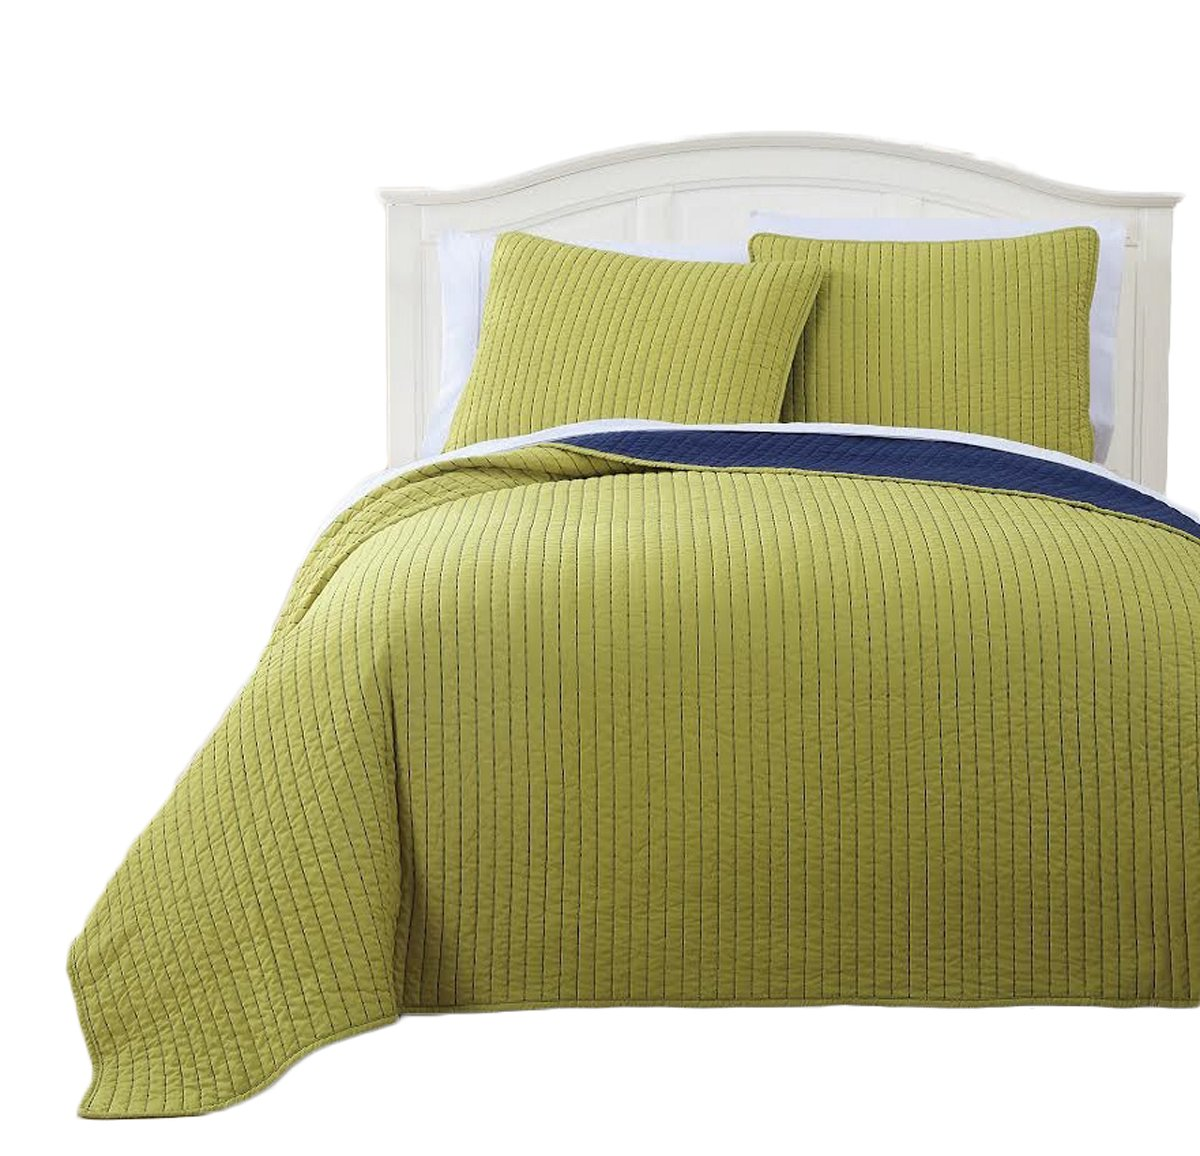 Wholesalebeddings Coverlet King Size Citron with Navy reversible Embroidered 3pc Quilt Set